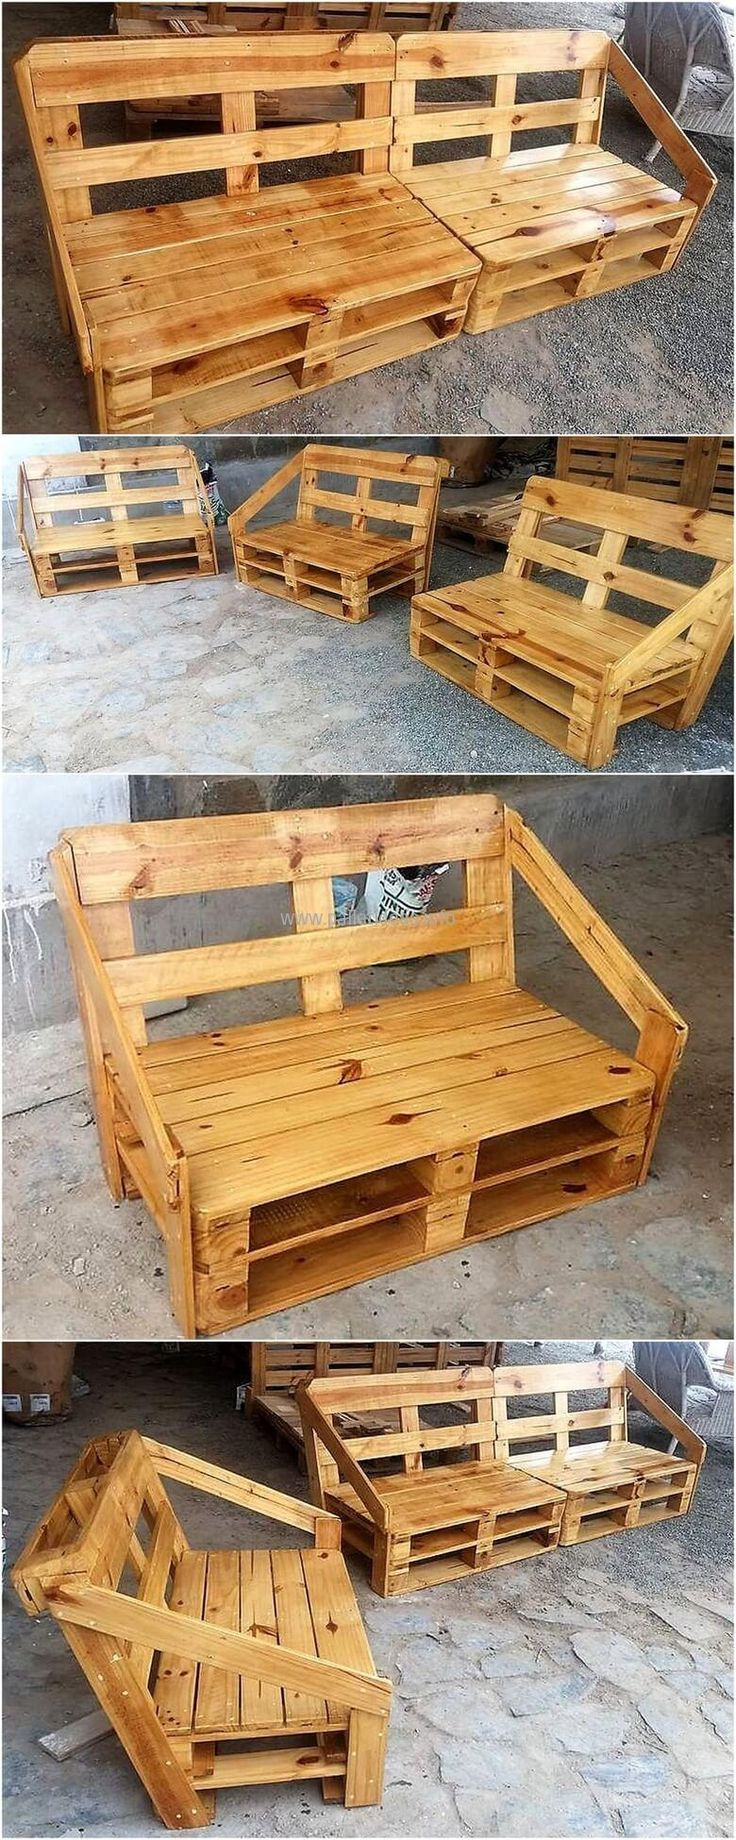 best 25 recycled pallets ideas on pinterest recycled pallet furniture pallet bathroom and. Black Bedroom Furniture Sets. Home Design Ideas